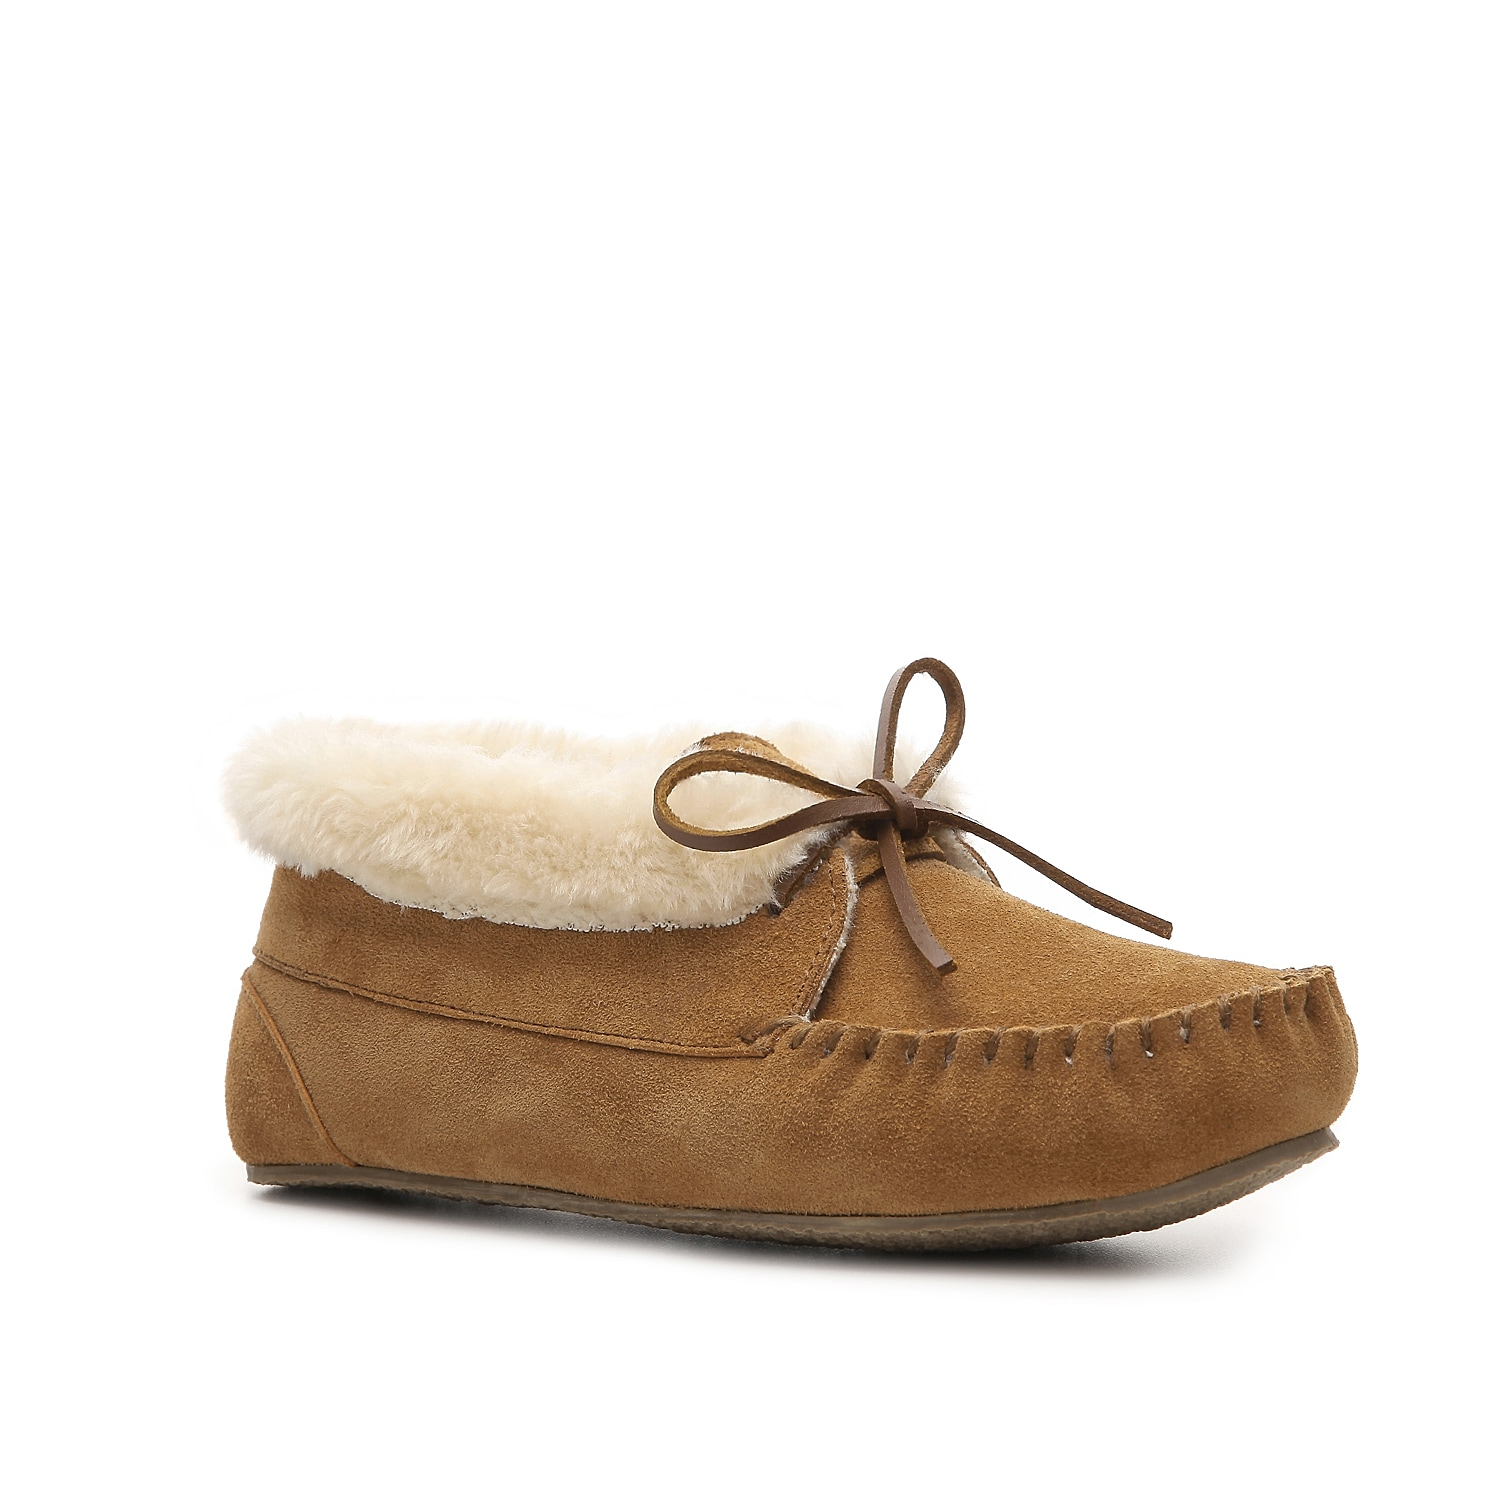 Keep warm and comfortable all season long with these plush Minnetonka slippers. The Julie Junior bootie slipper is a stylish solution for a day of lounging around the house or running to the store.